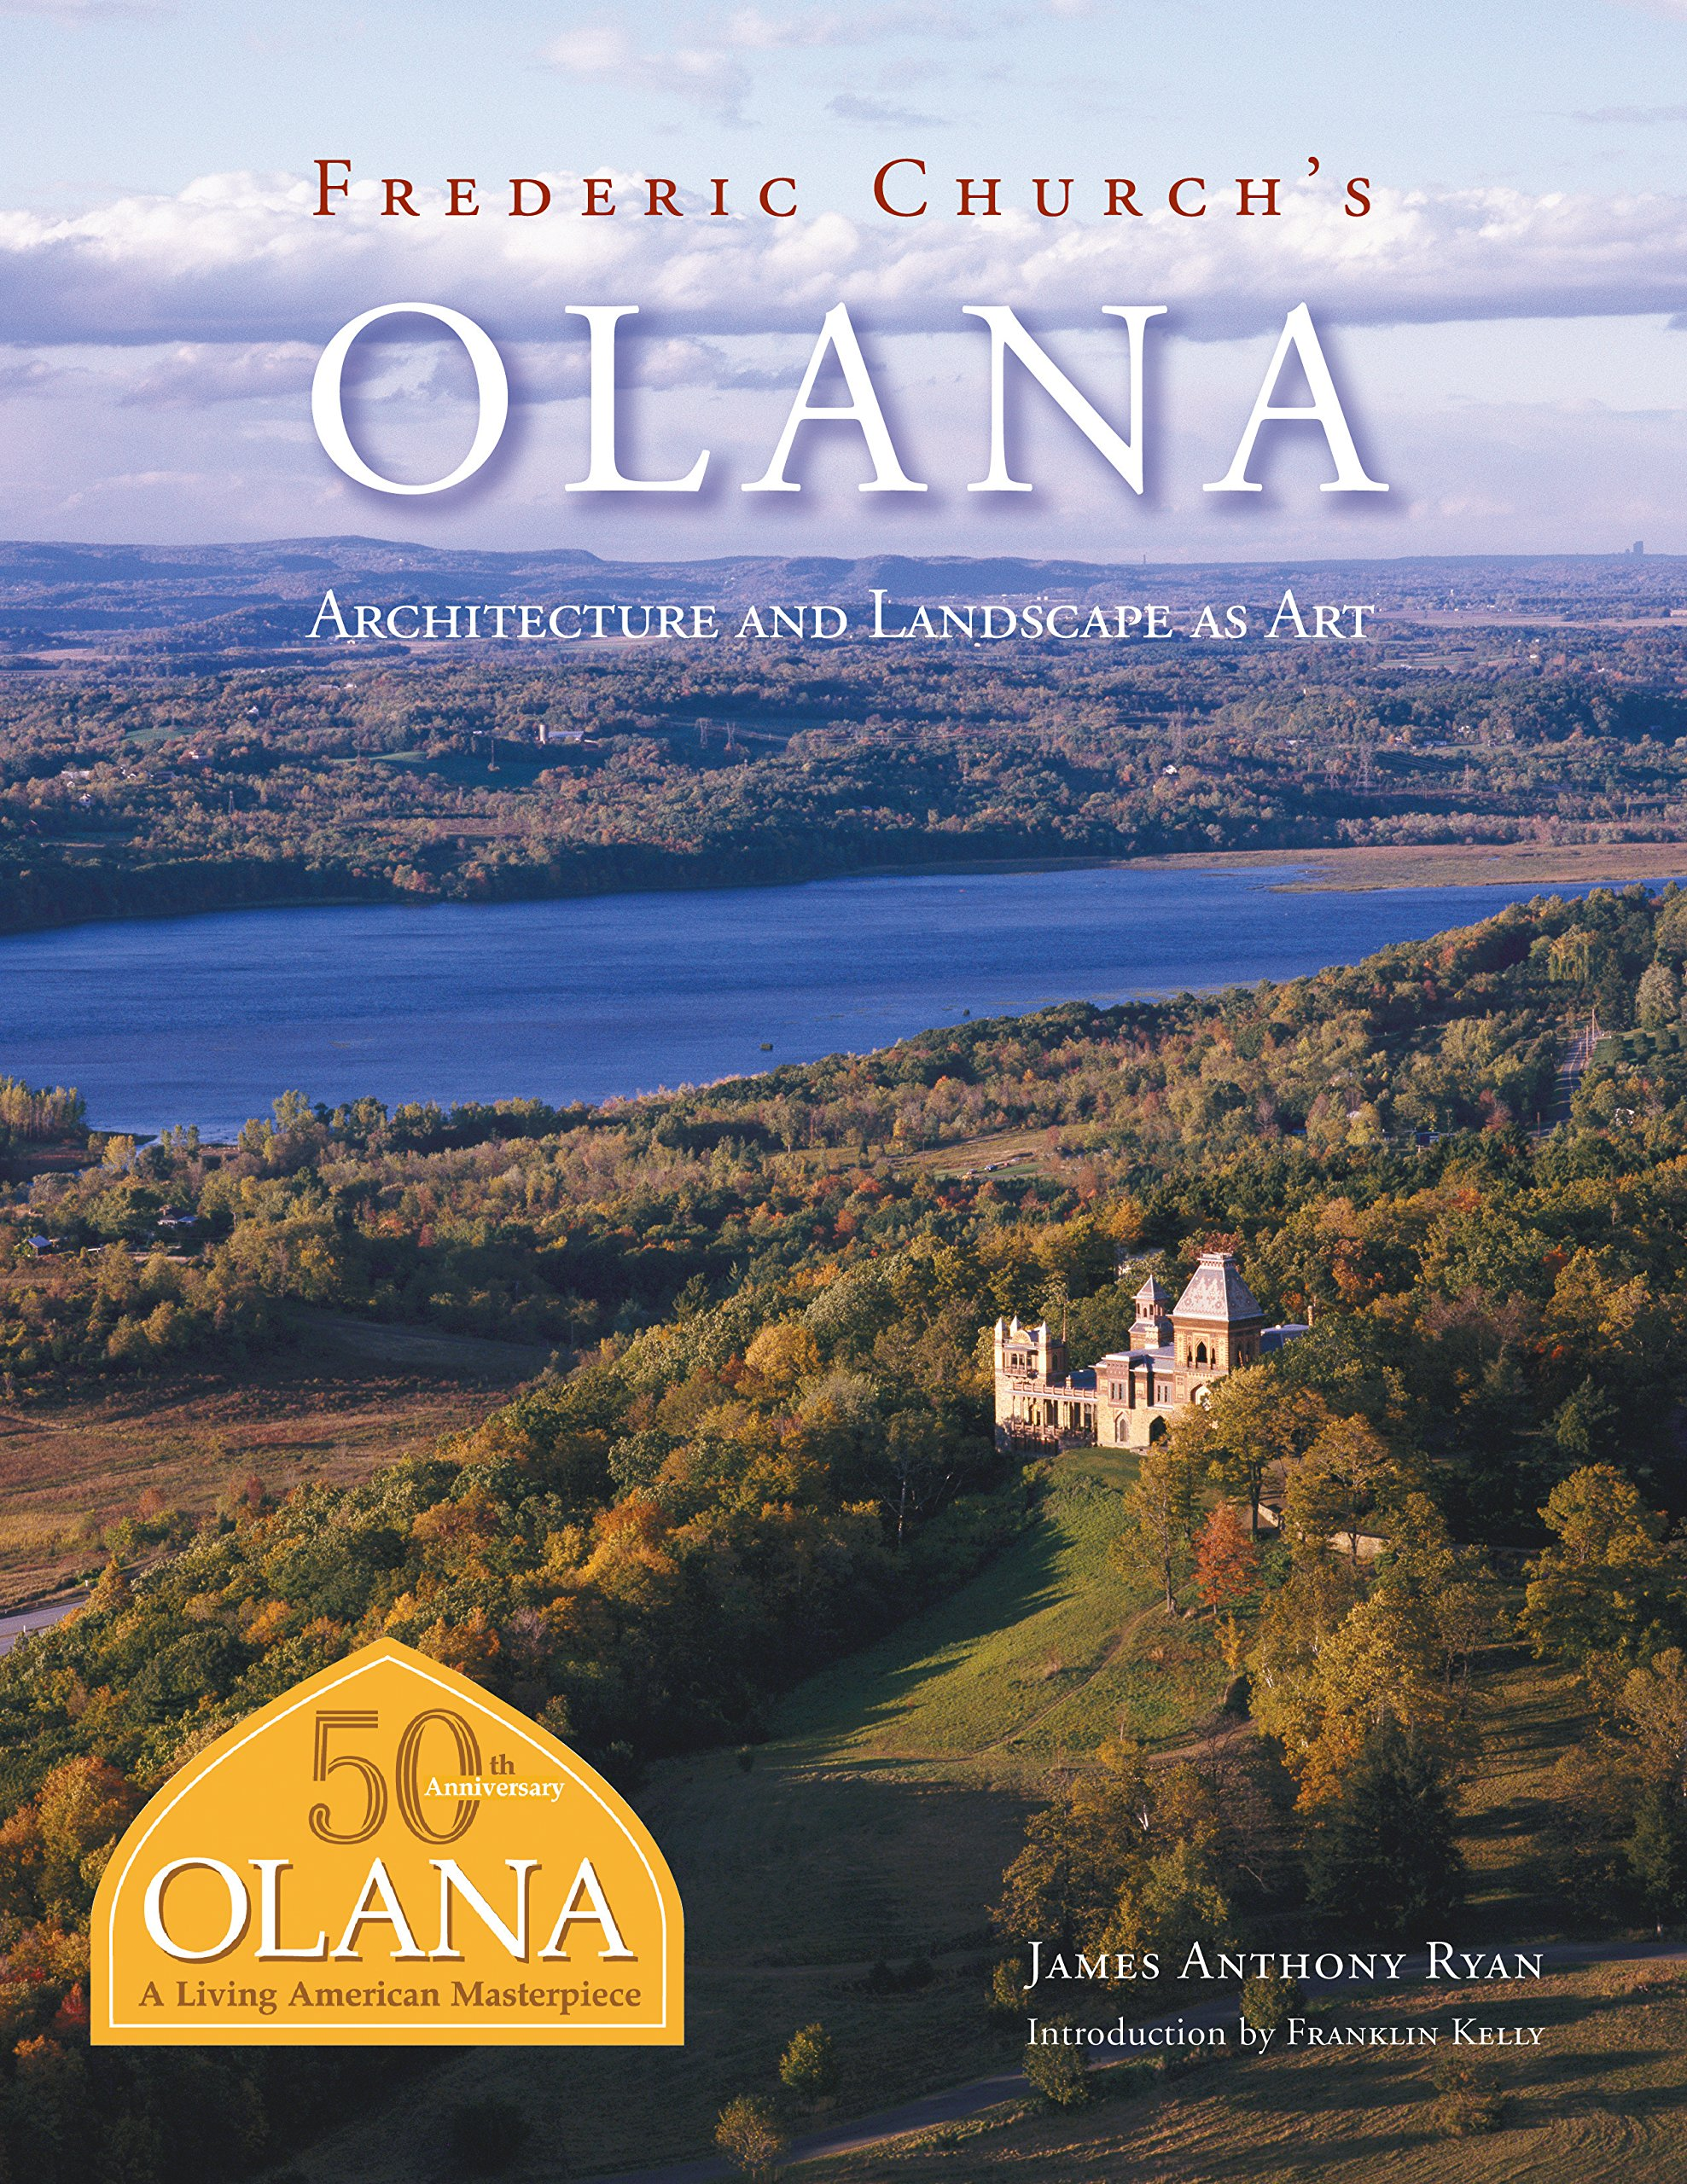 Frederic Church's Olana: Architecture and Landscape as Art ebook